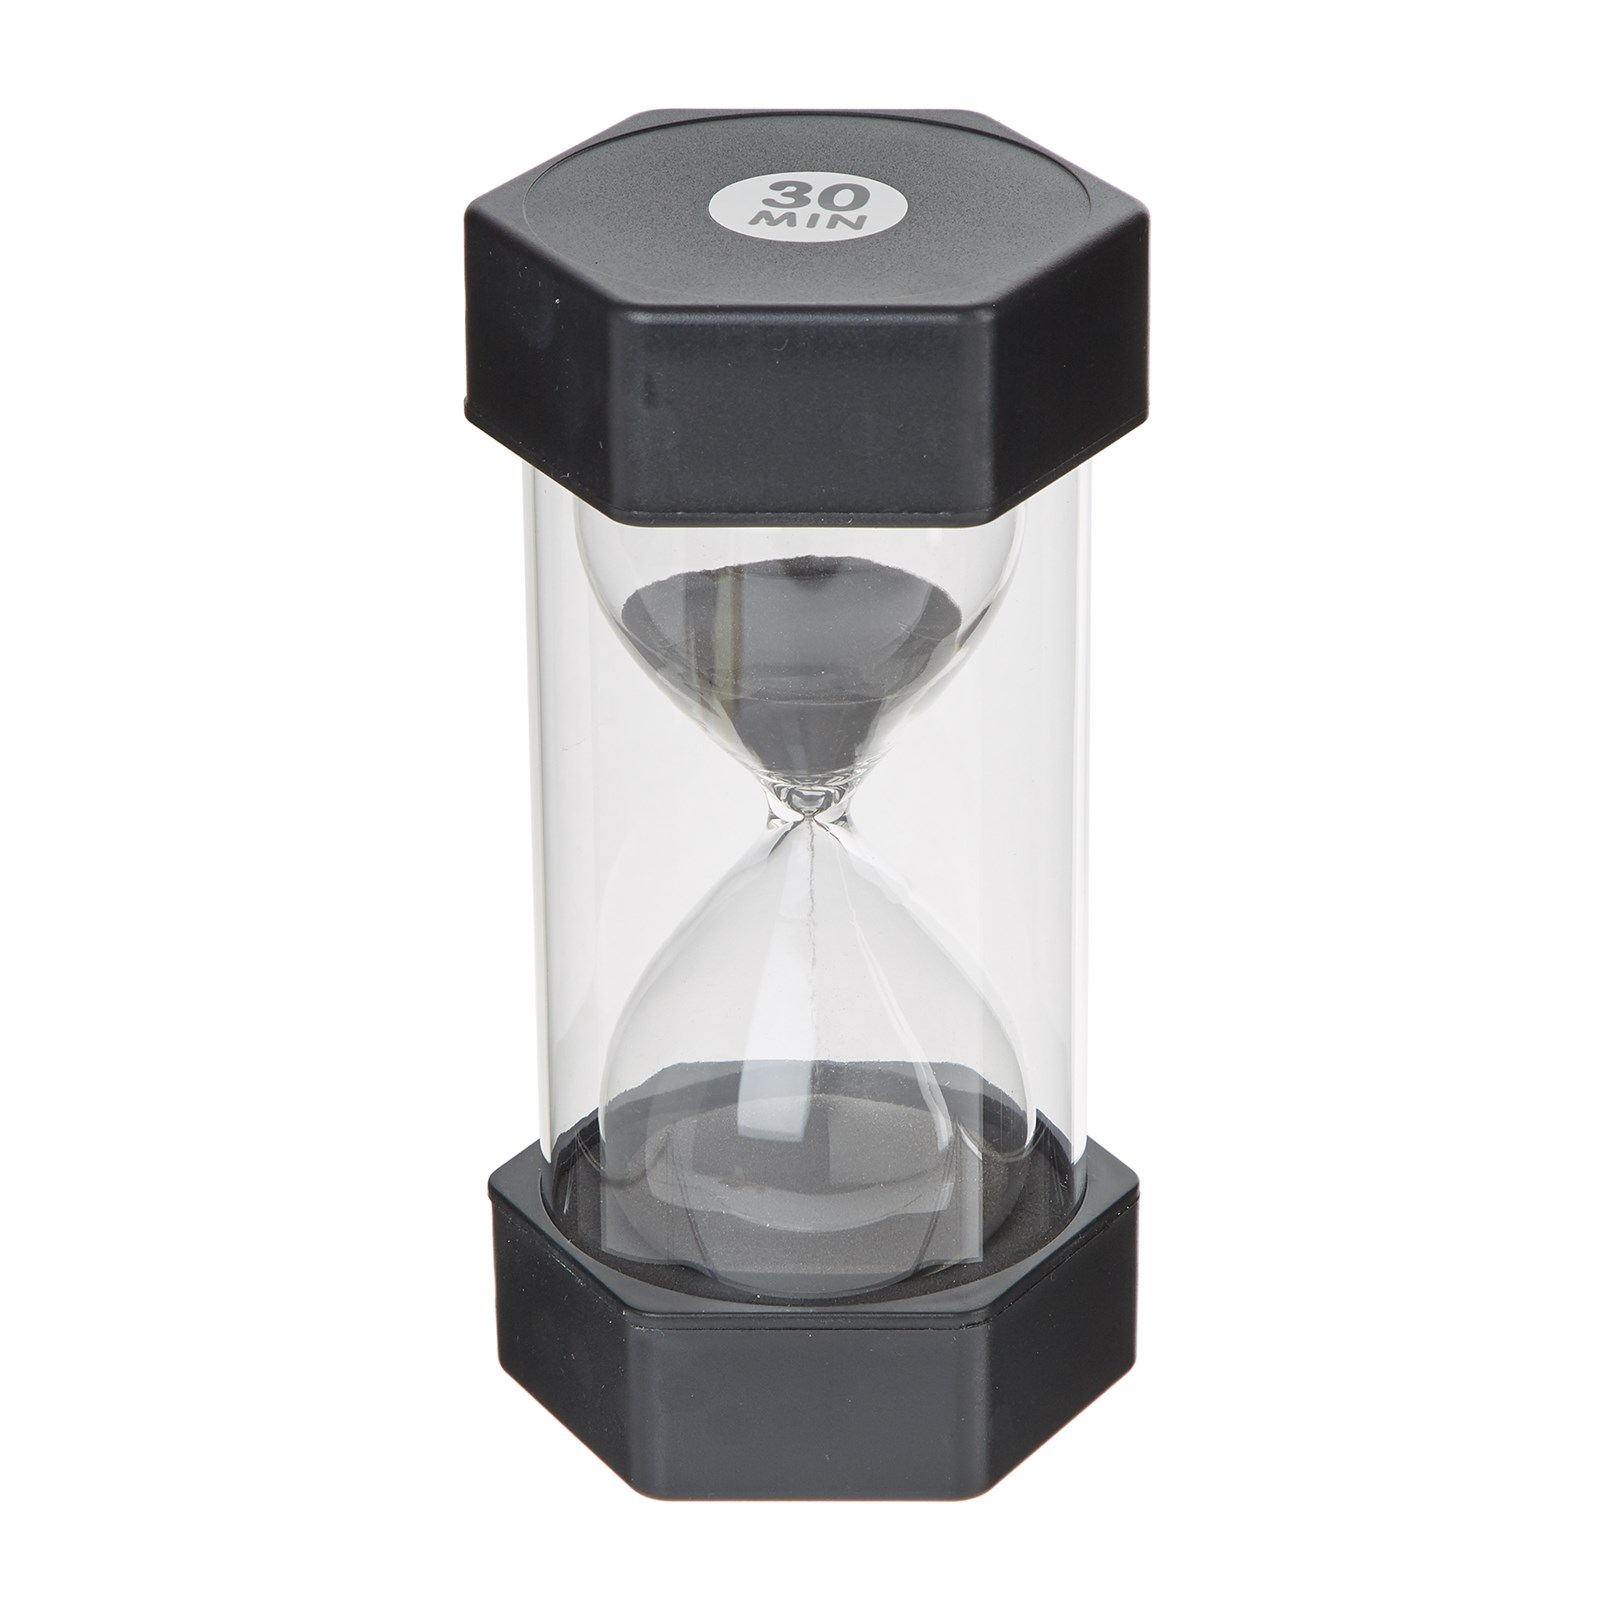 30 Minute Classroom Sand Timer